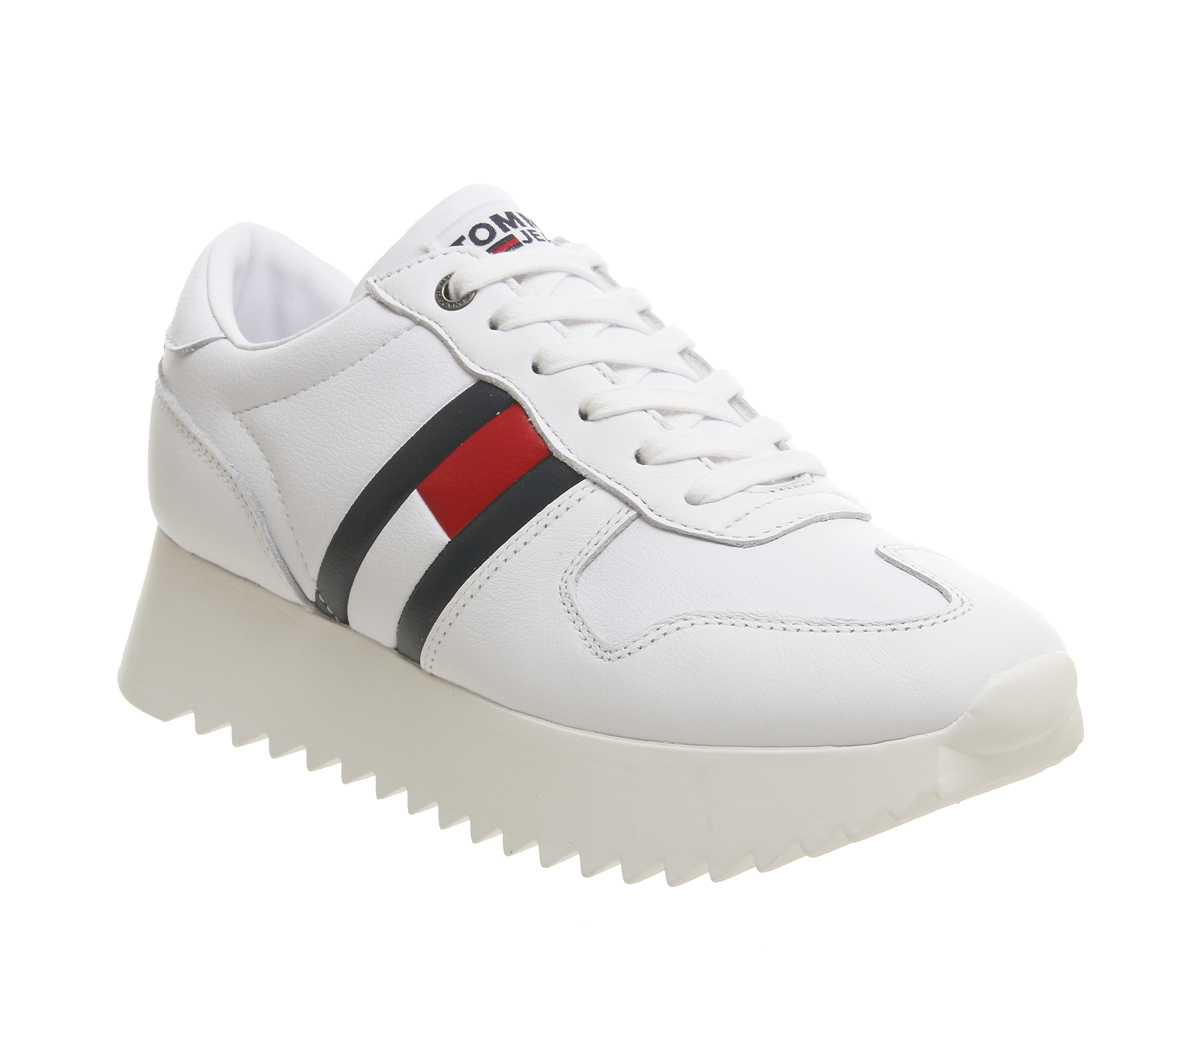 1a8a91e46556 Sentinel Womens Tommy Hilfiger High Cleated Sneakers White Red Blue  Trainers Shoes